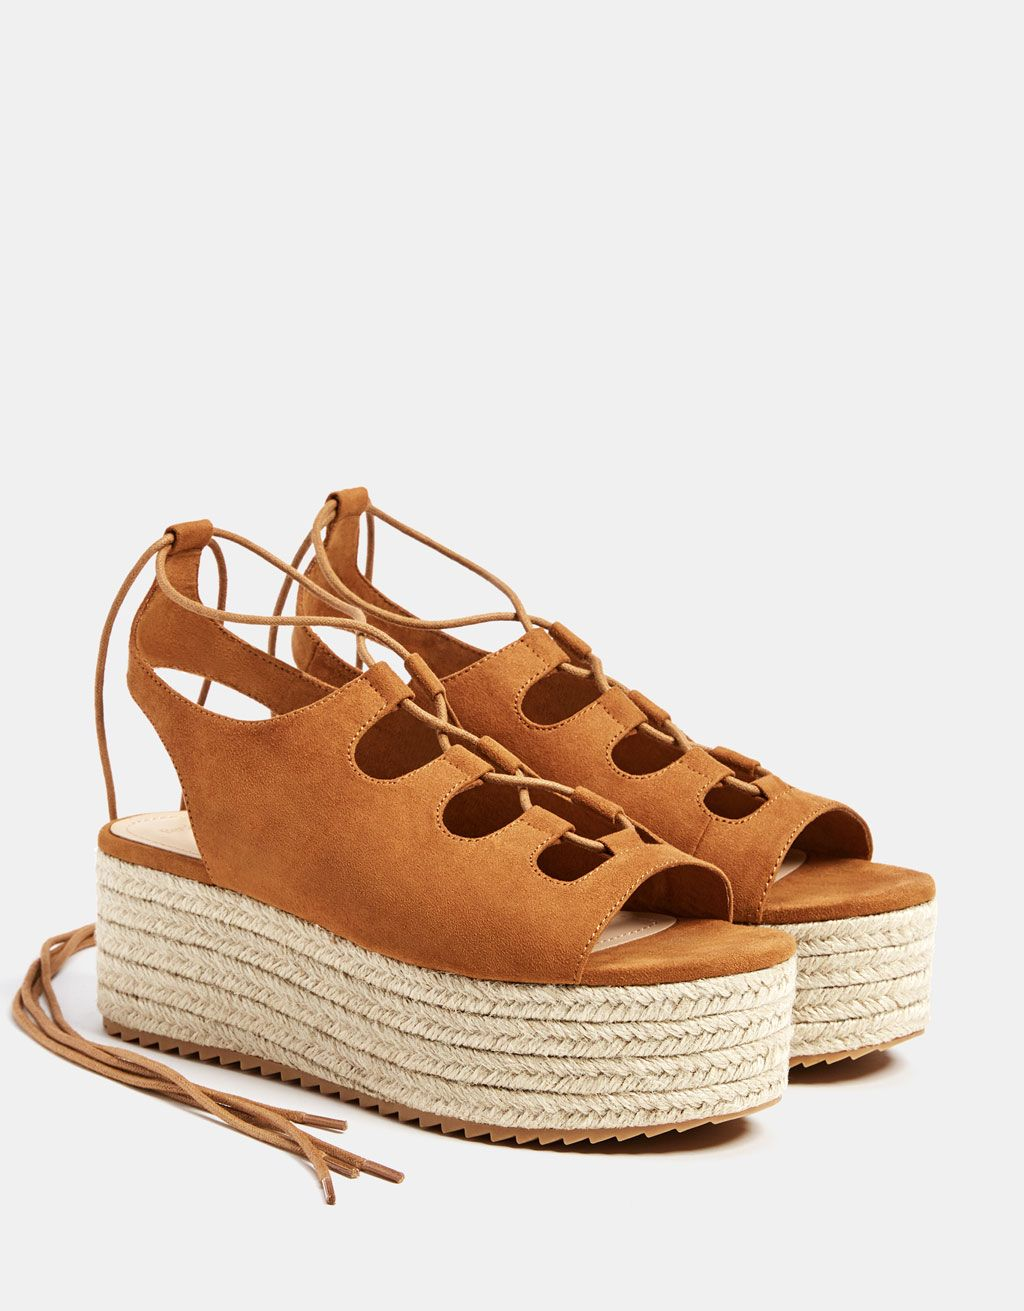 06fc1e5f8 Jute platform lace-up sandals. Discover this and many more items in Bershka  with new products every week